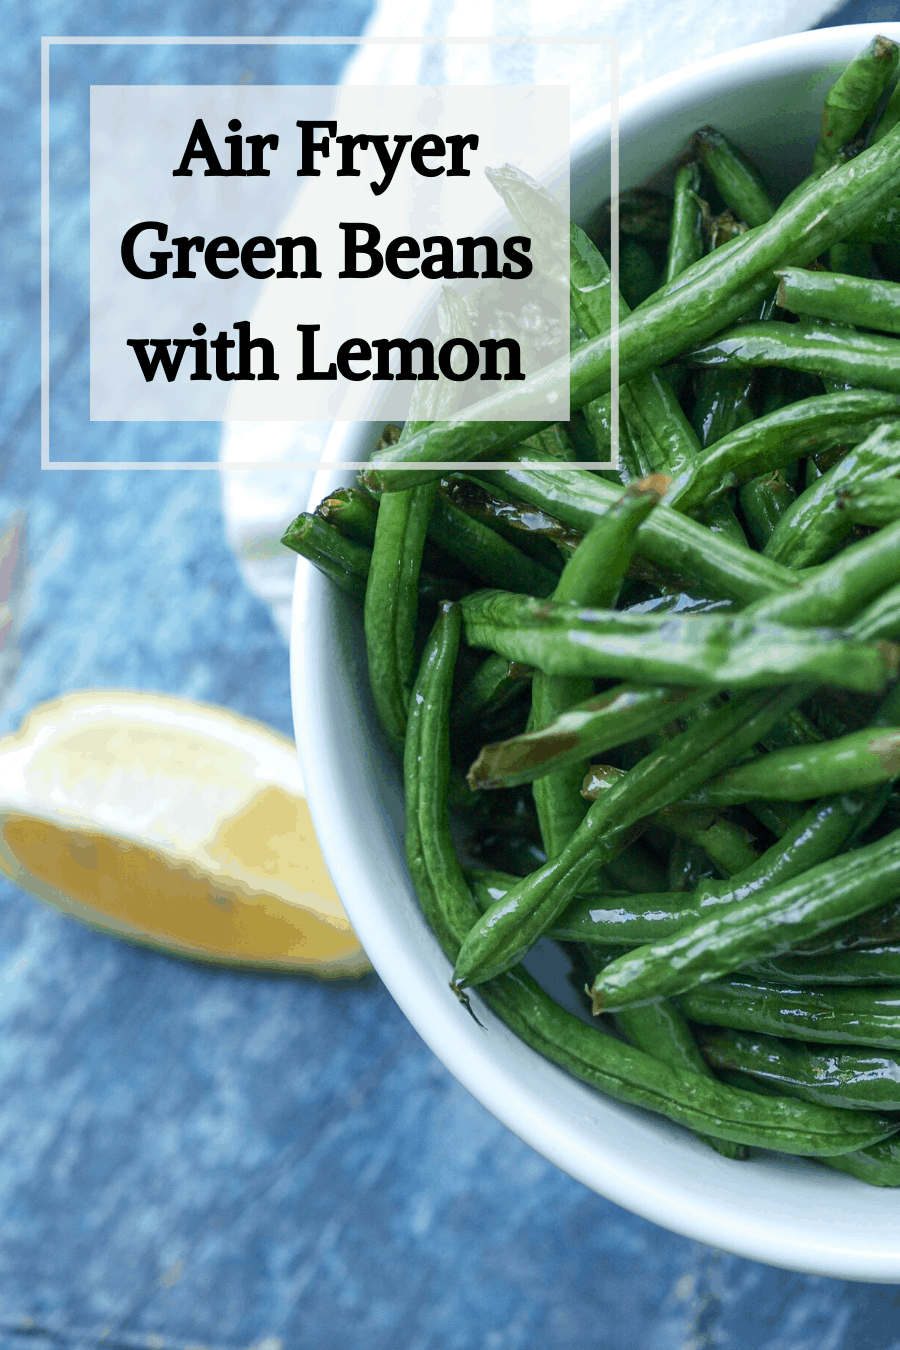 A pinterest pin for air fryer green beans -- a large white bowl of air fried green beans on a wooden board.